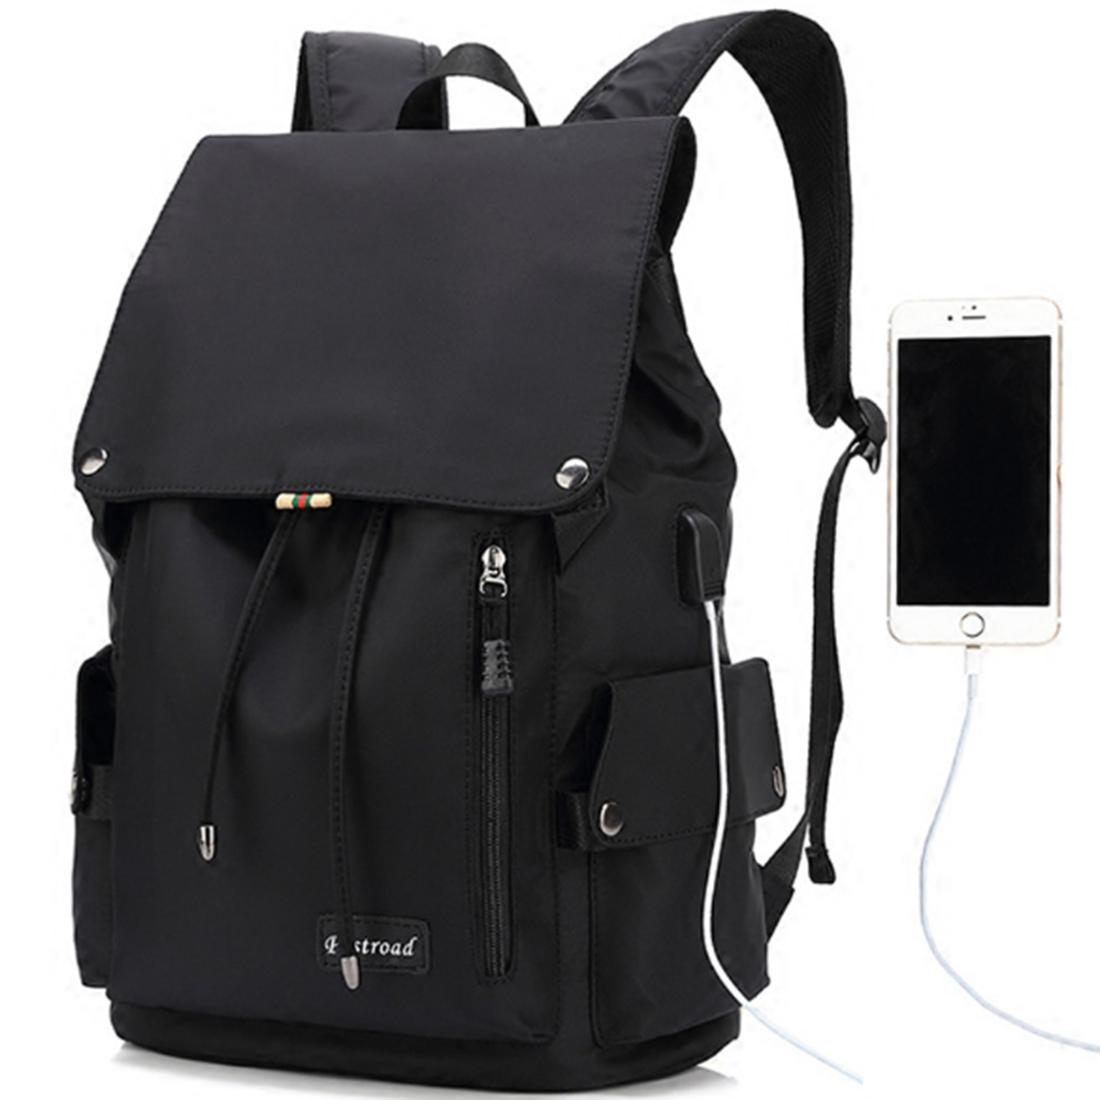 Male Nylon Backpack Big Capacity Outdoor Travel School Bag with USB Charging Port - Black